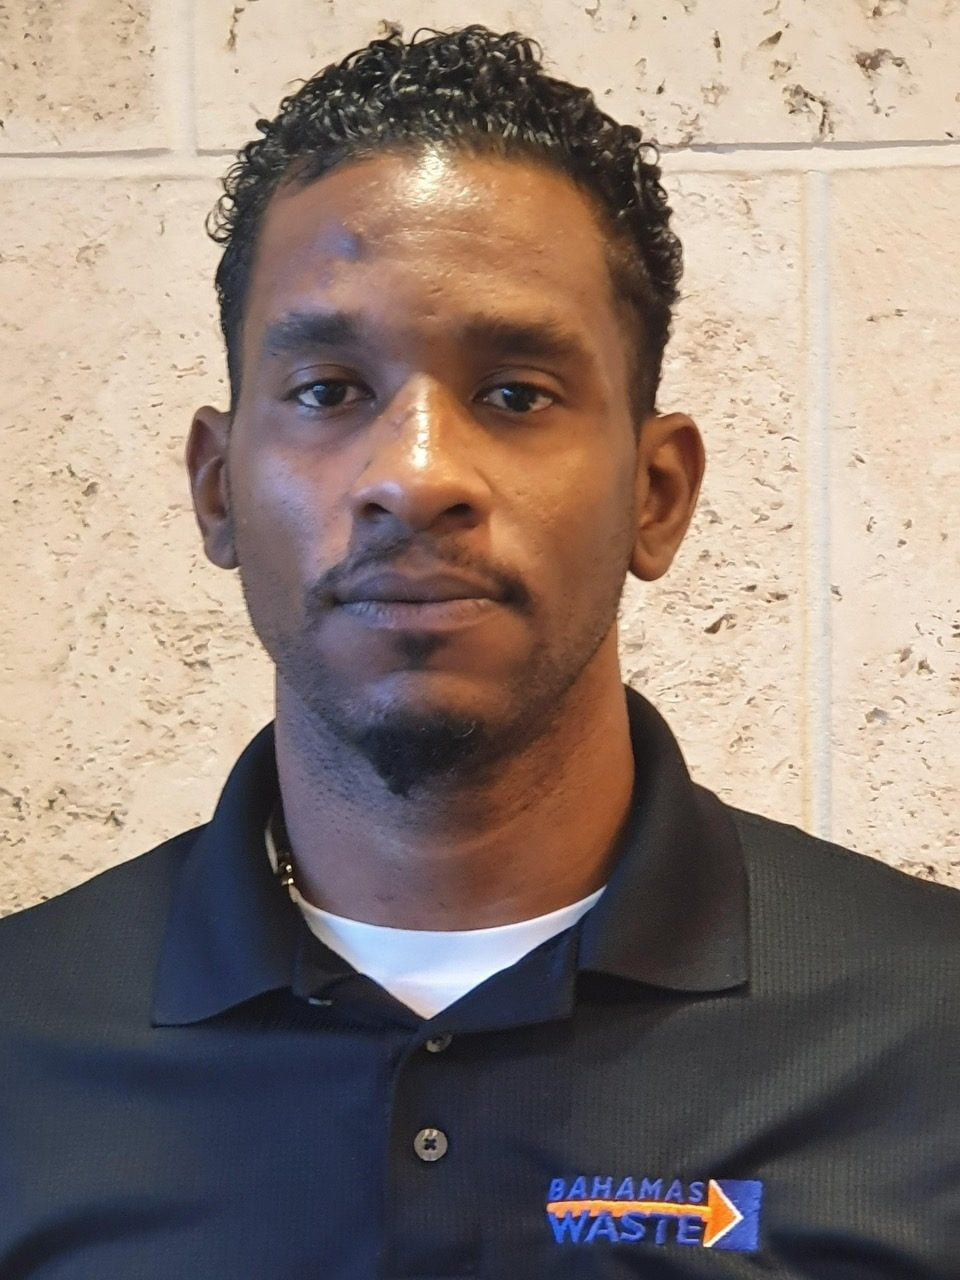 Bahamas Waste recruits local talent